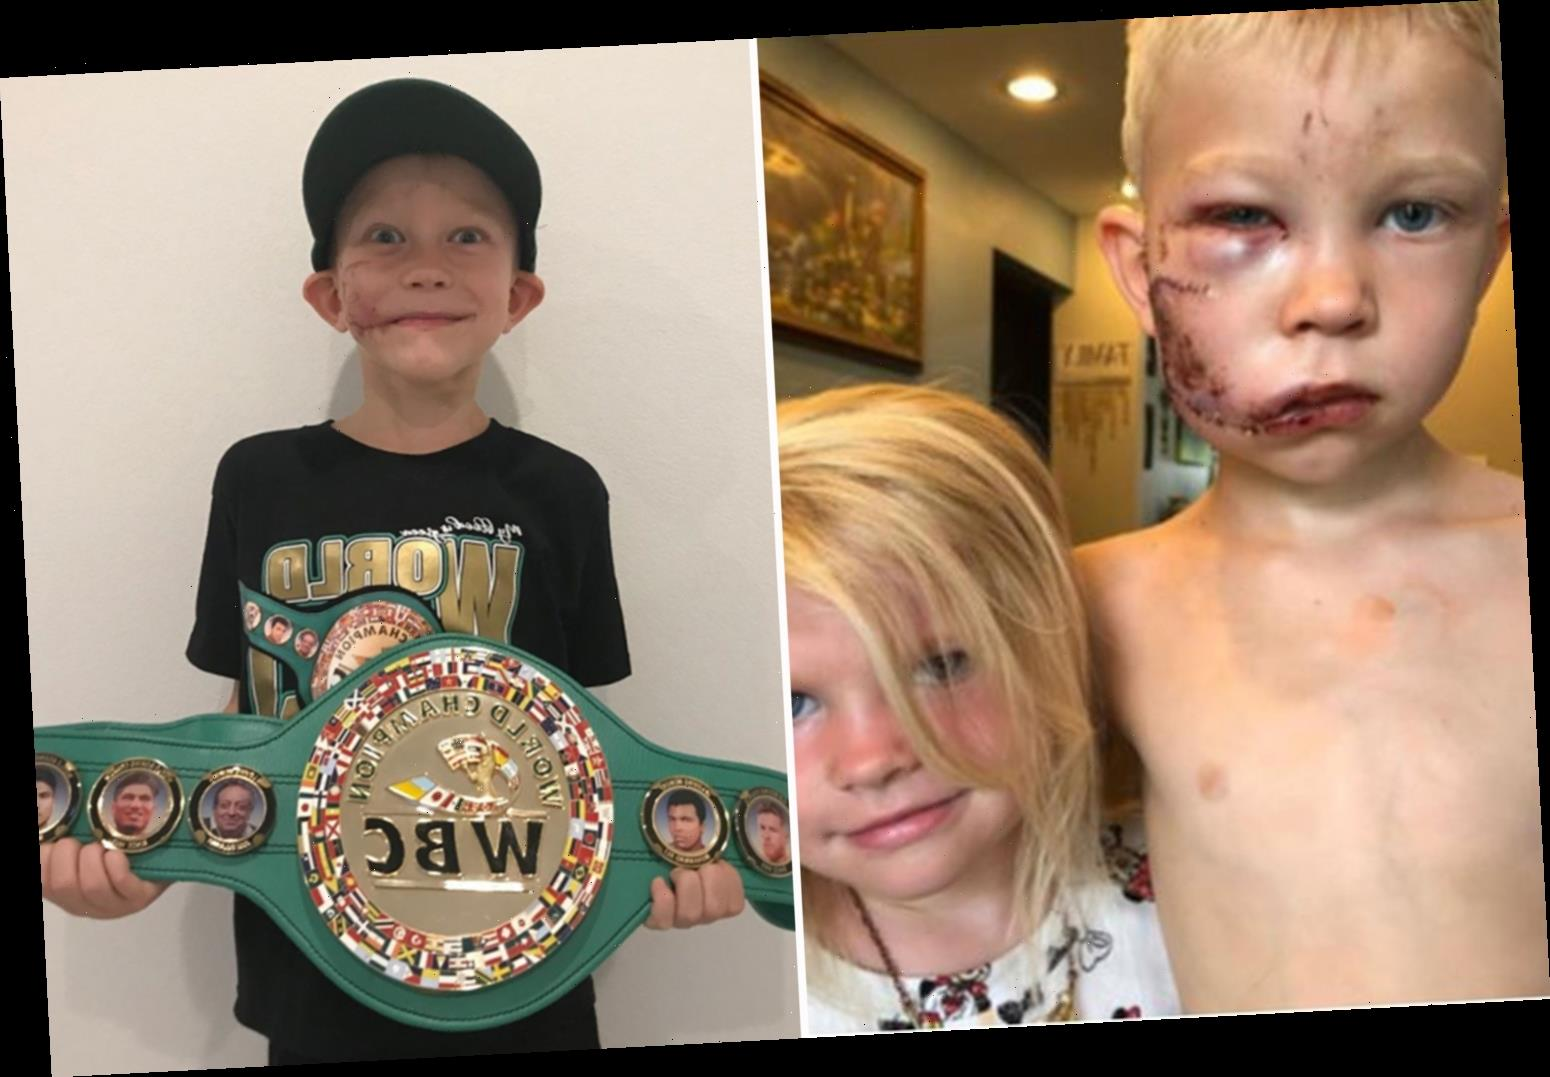 WBC announces new 'Bridger' weight class named in honour of child who was savaged in dog attack